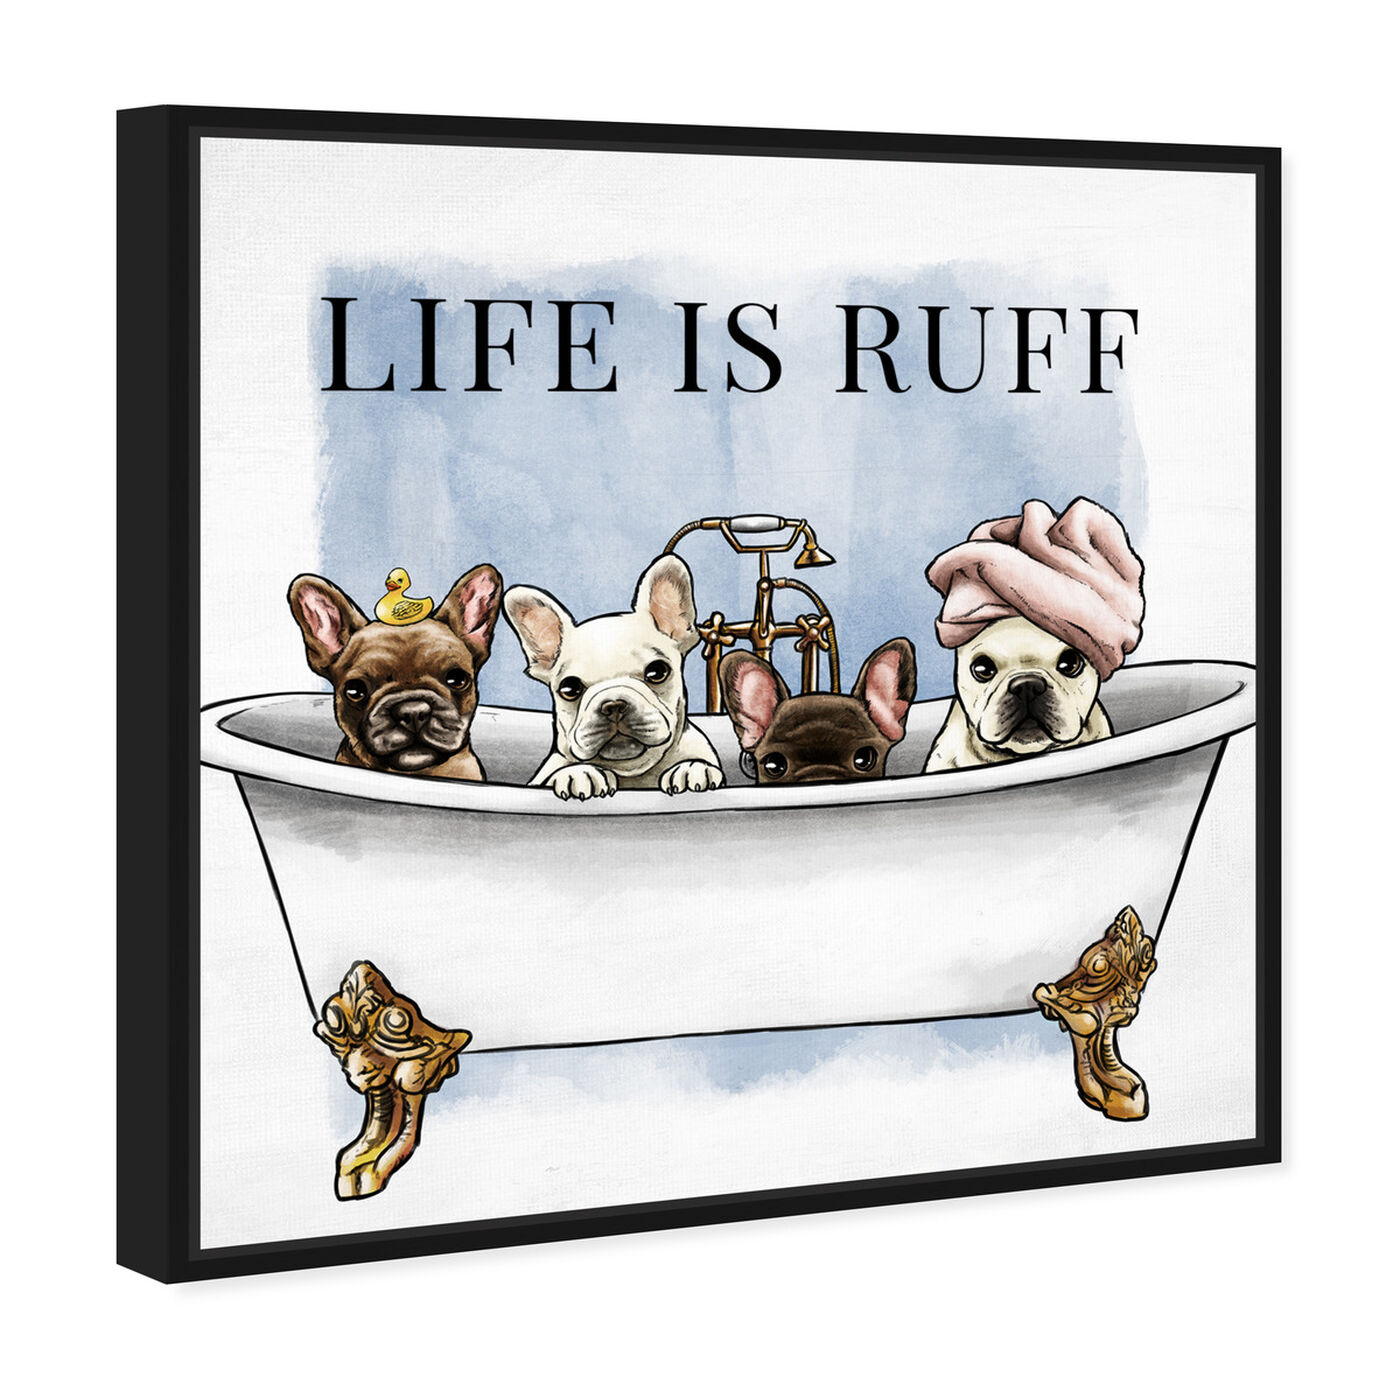 Angled view of Life is Ruff featuring bath and laundry and bathtubs art.